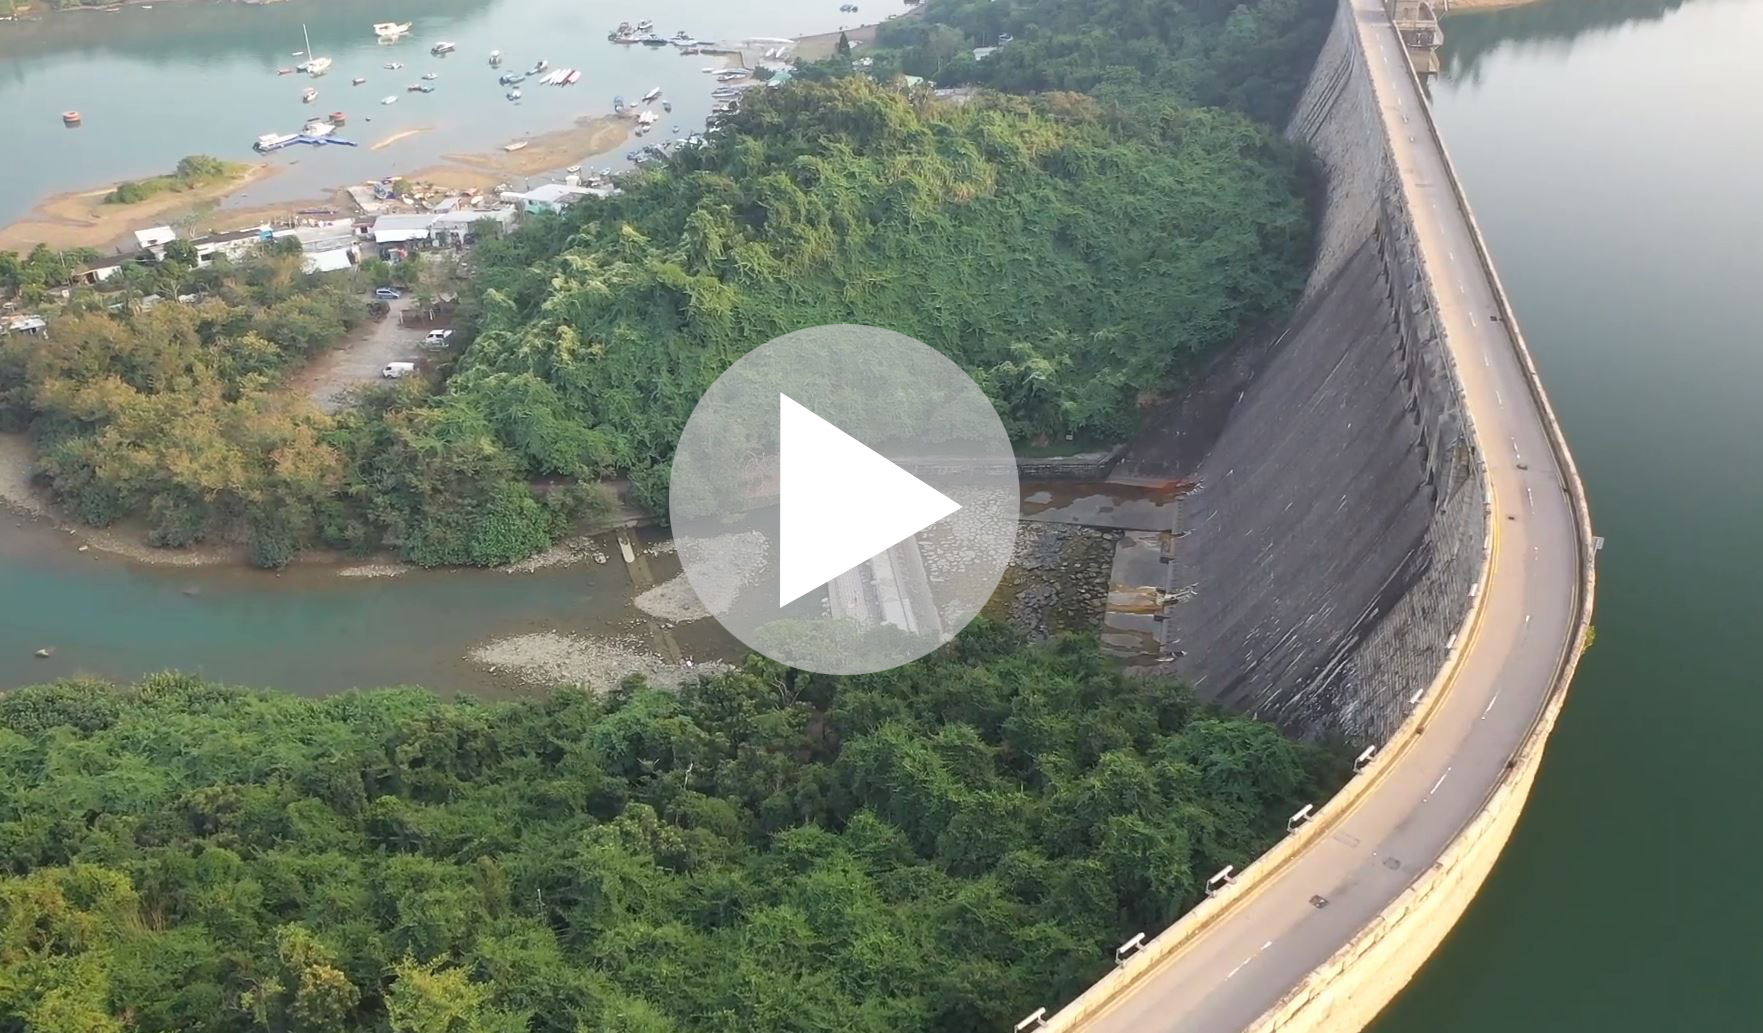 Commemorating the Centenary Tai Tam Tuk Reservoir – the Dam and the People